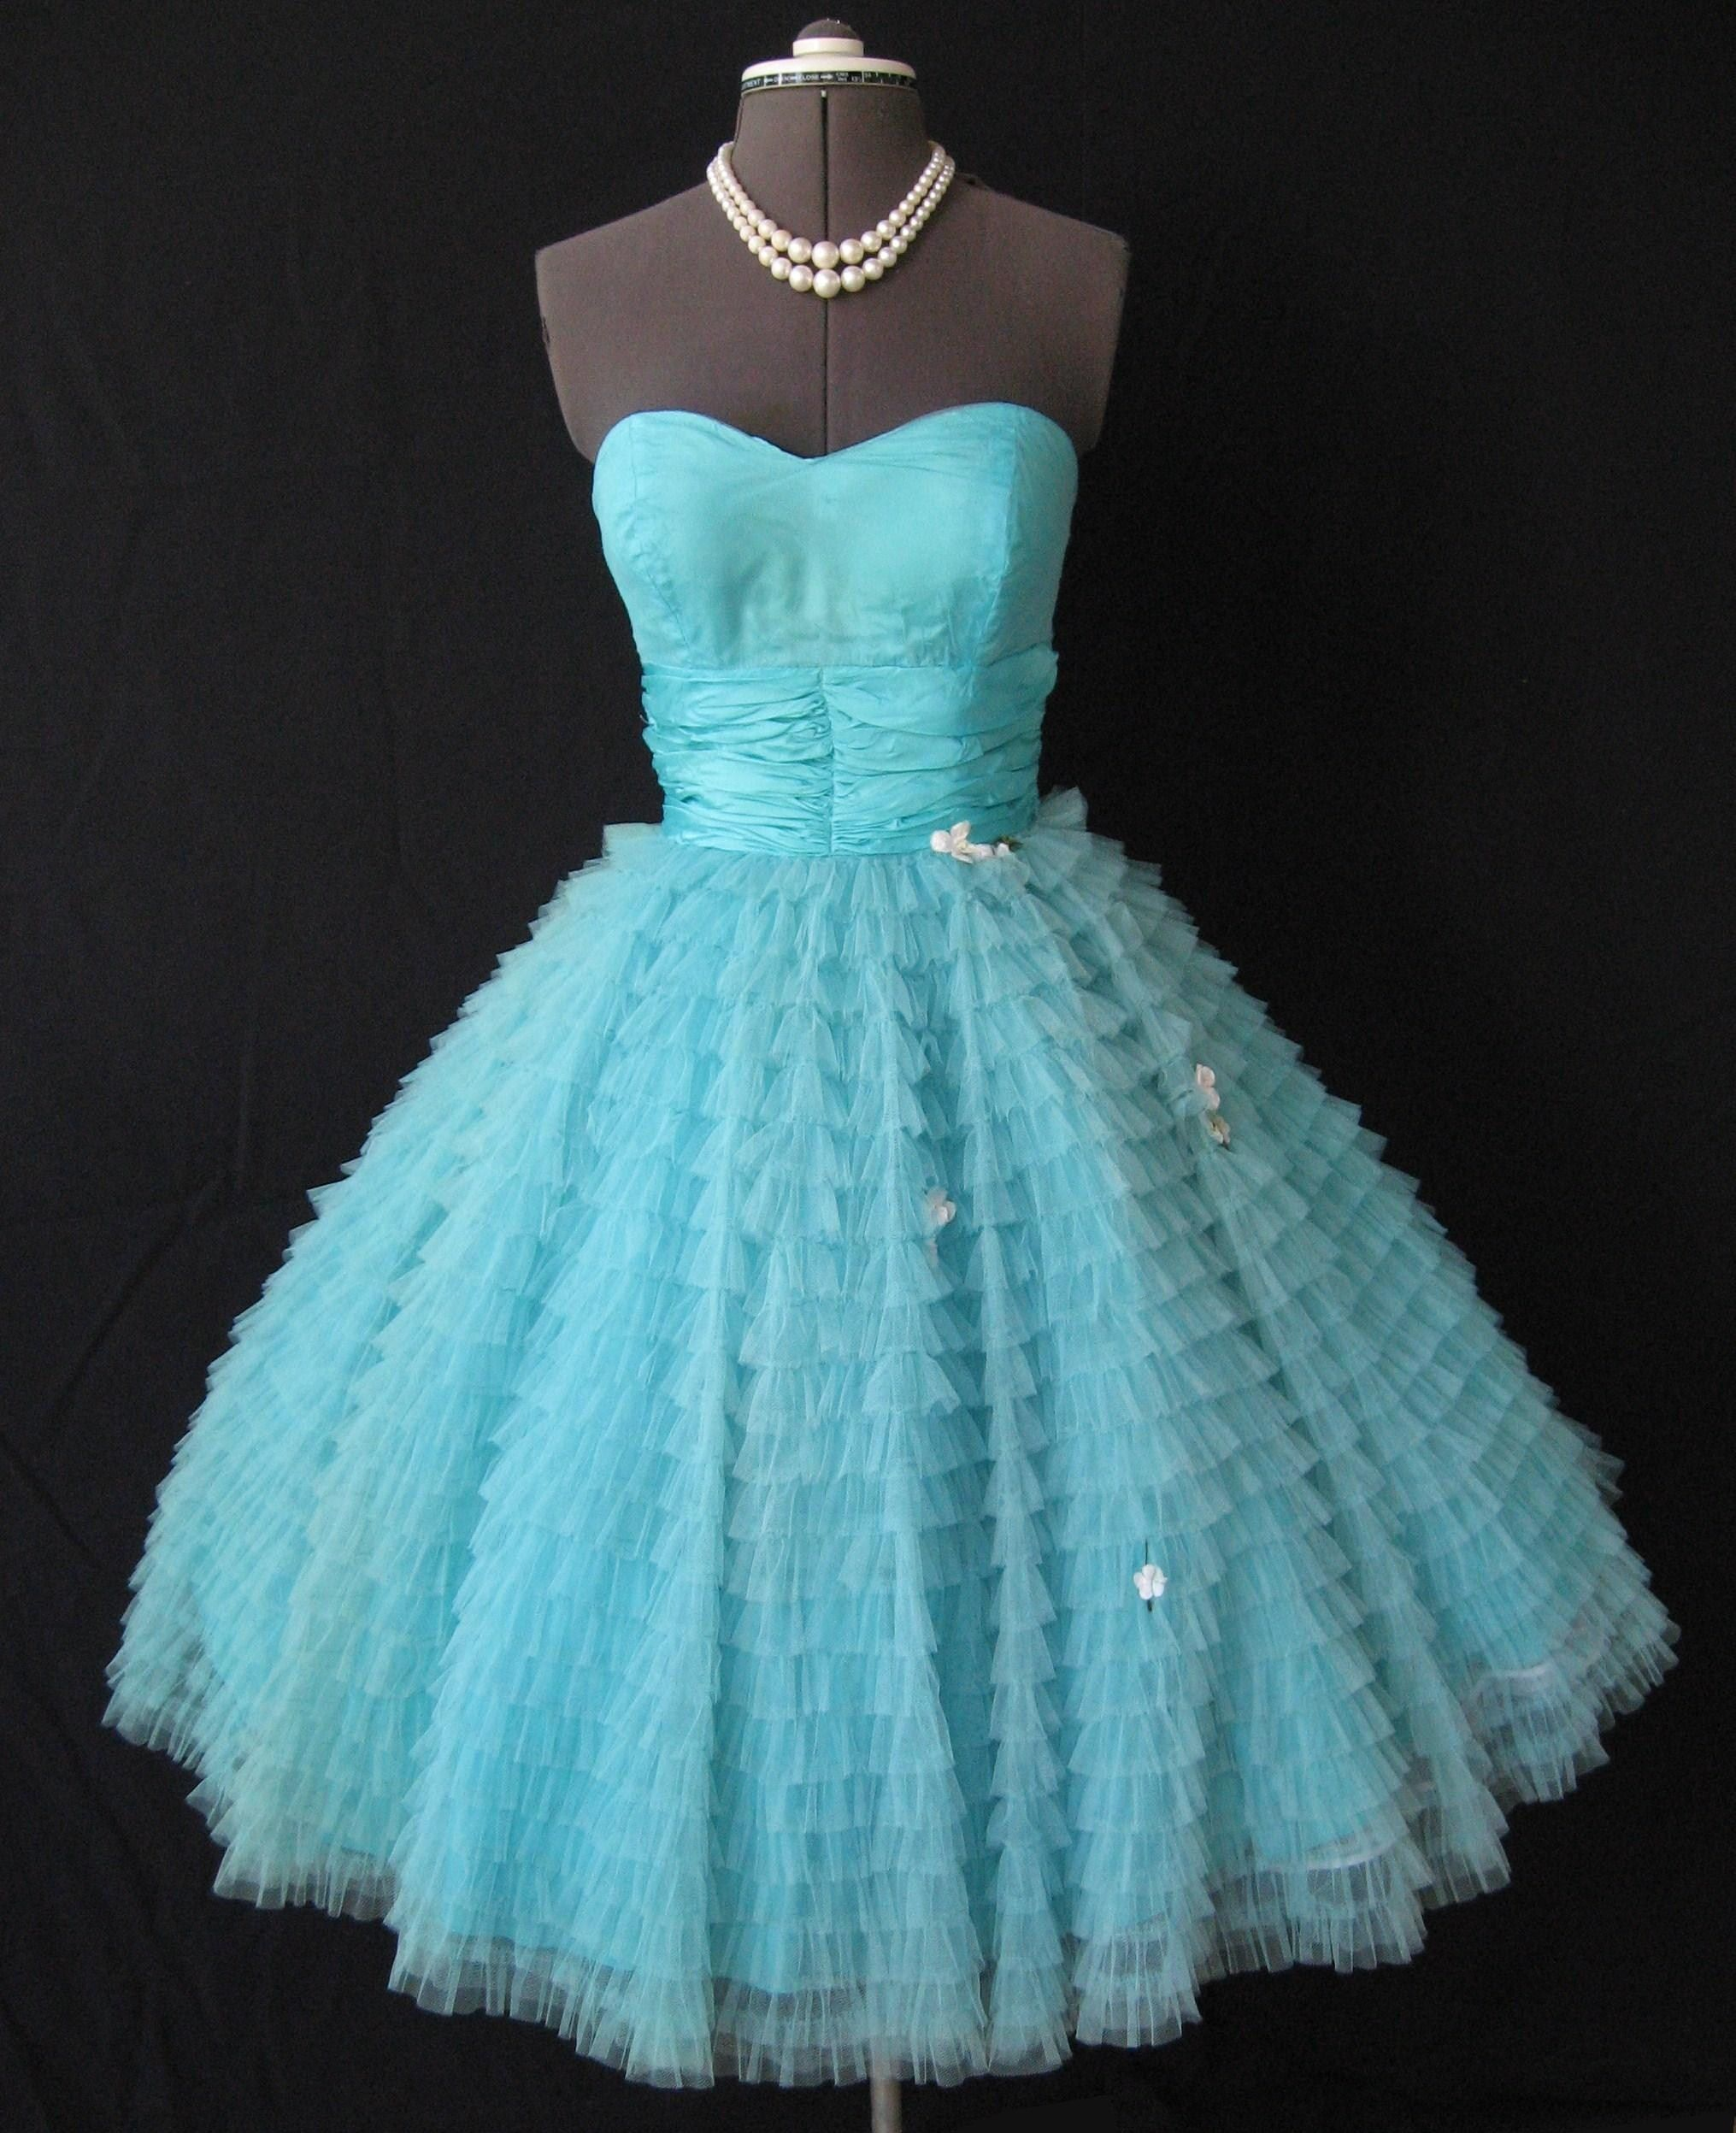 Strapless us prom dress s prom dresses prom and polyvore